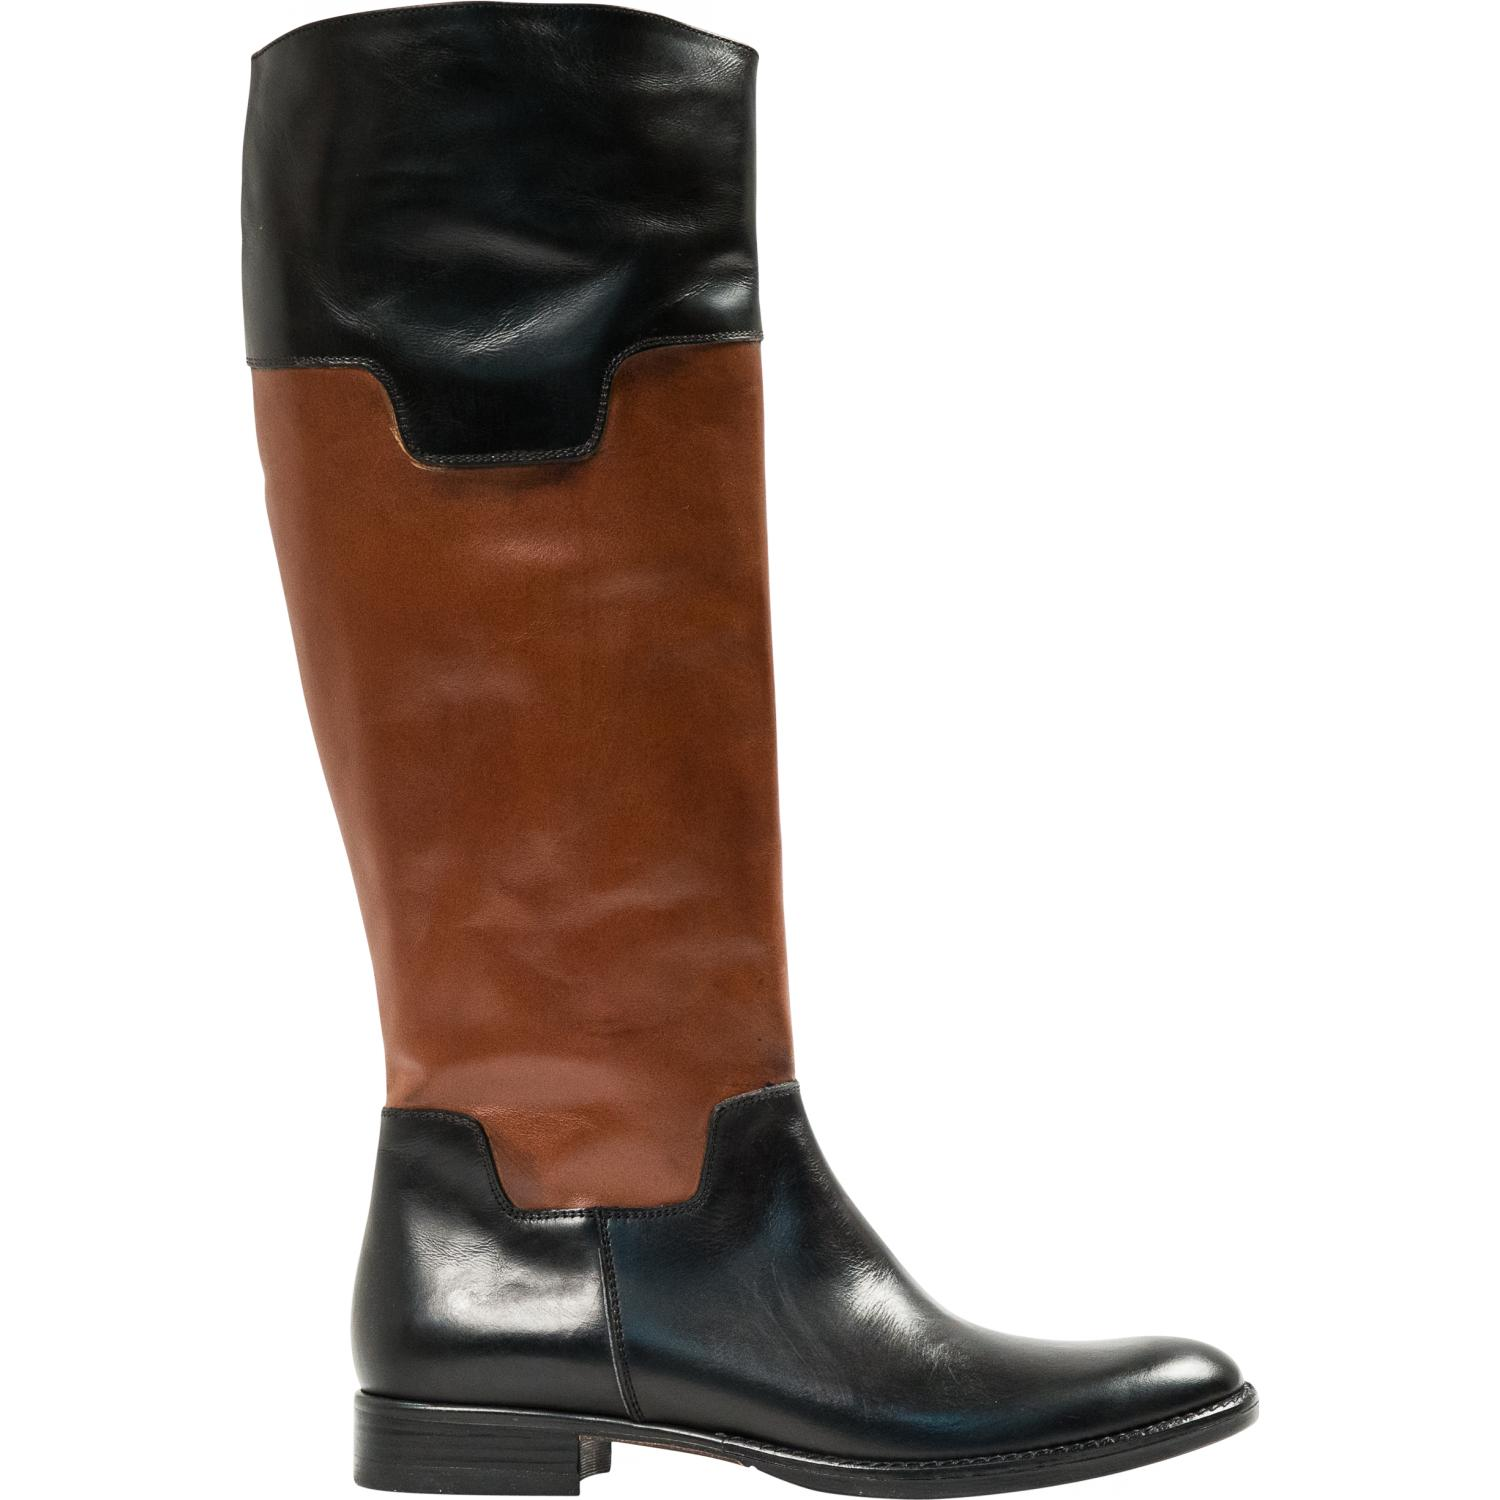 Lori Black And Brown Nappa Leather Tall Riding Boots Paolo Shoes